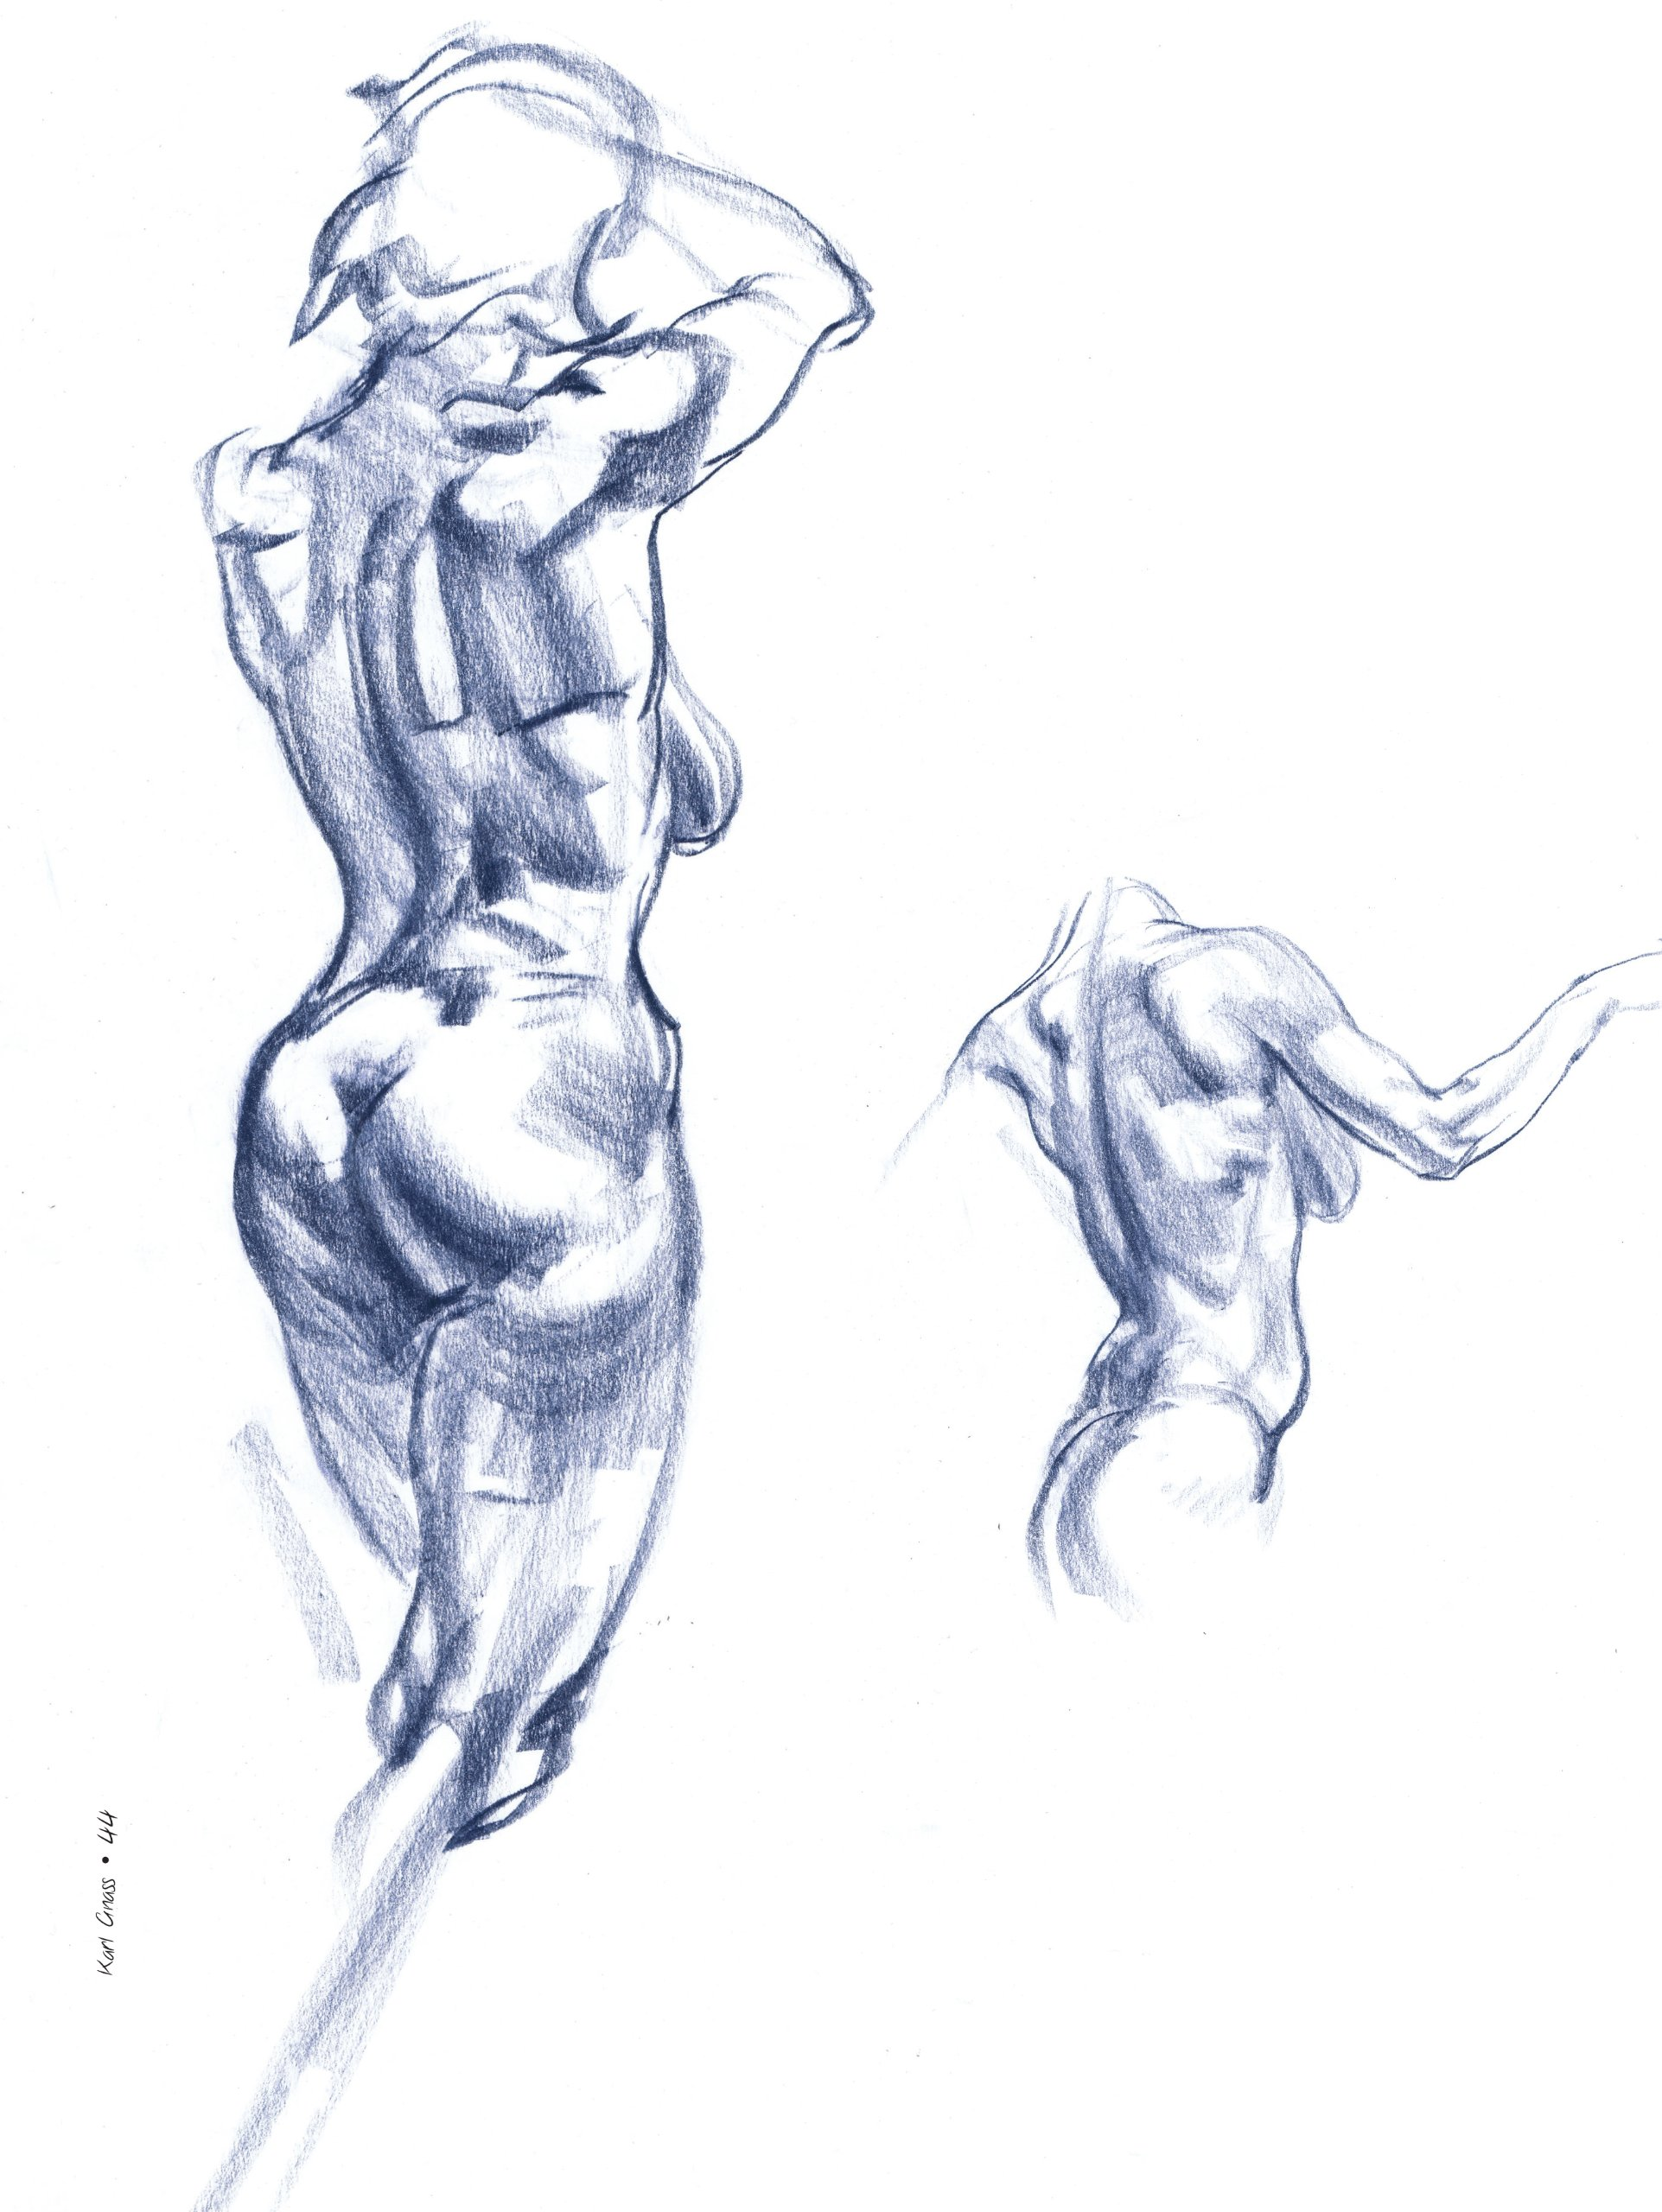 I Want To Get Better At Gesture Drawing